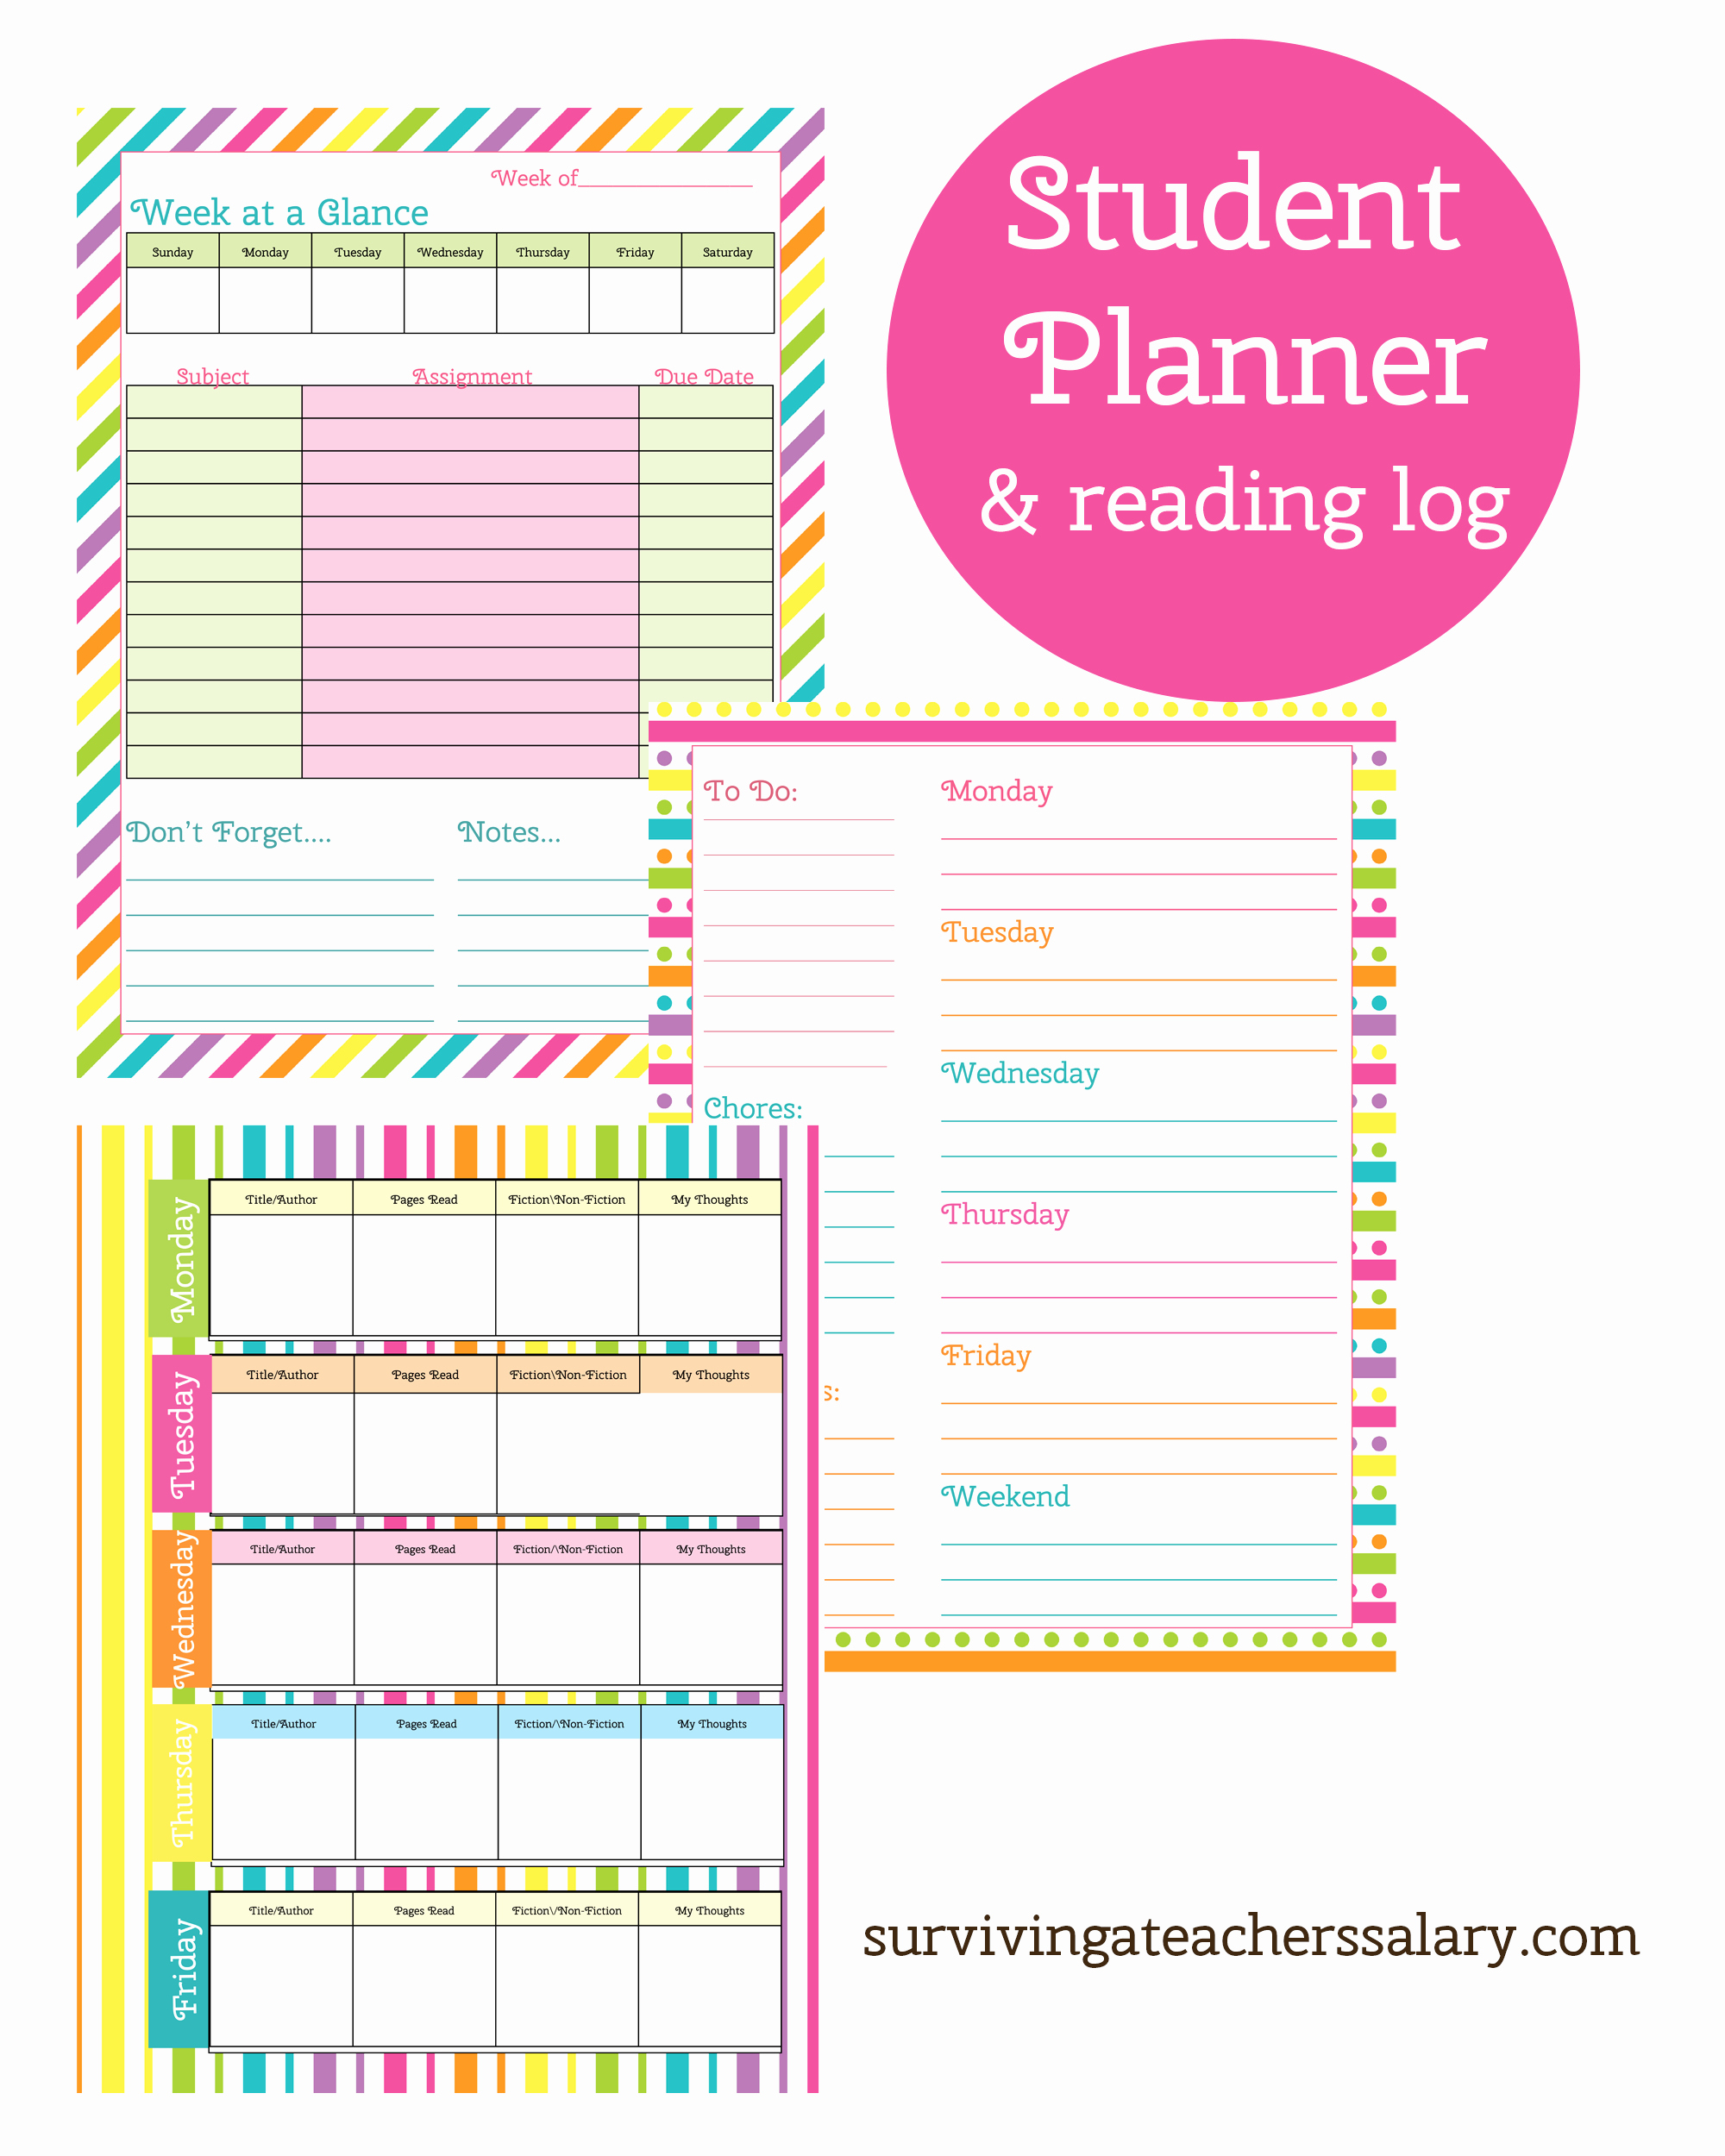 Printable Weekly Planner for Students Awesome Printable Student Planner and Reading Log